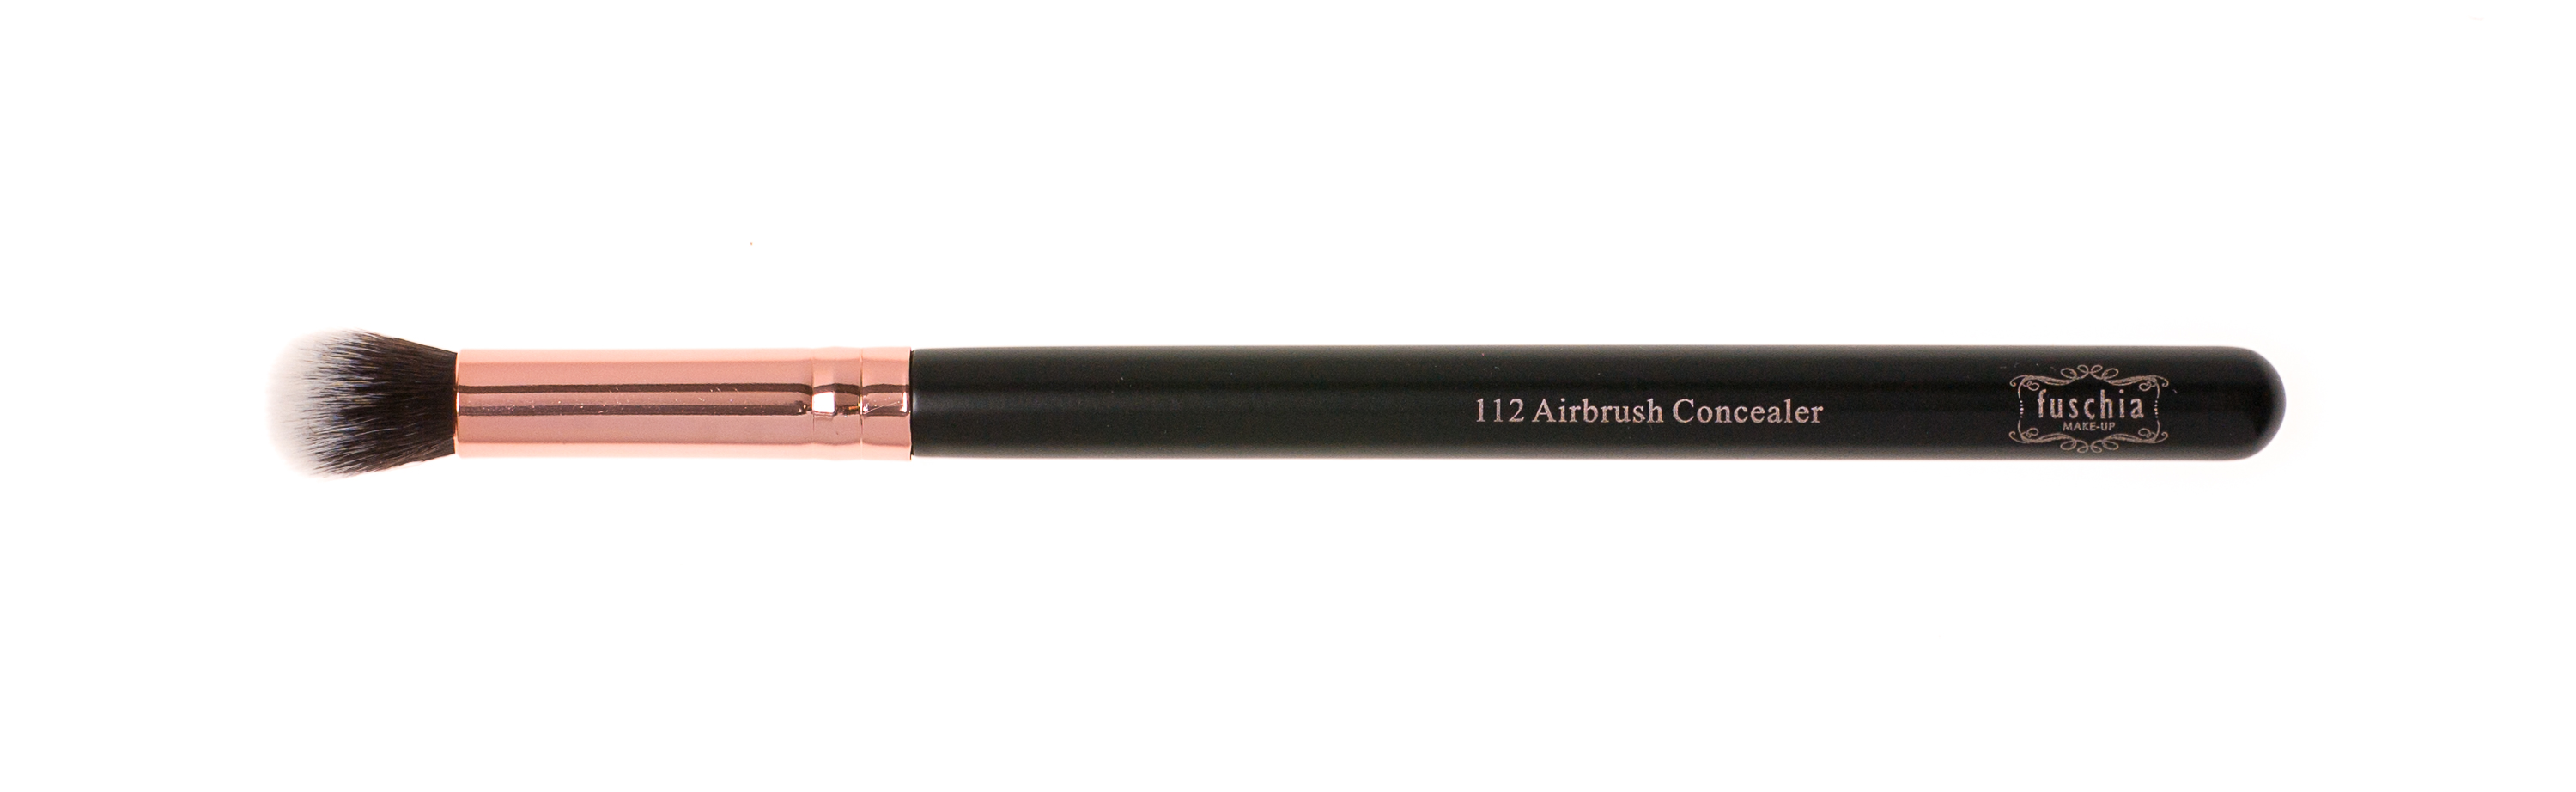 Fuschia Airbrush Concealer Brush (Rose Gold 112)